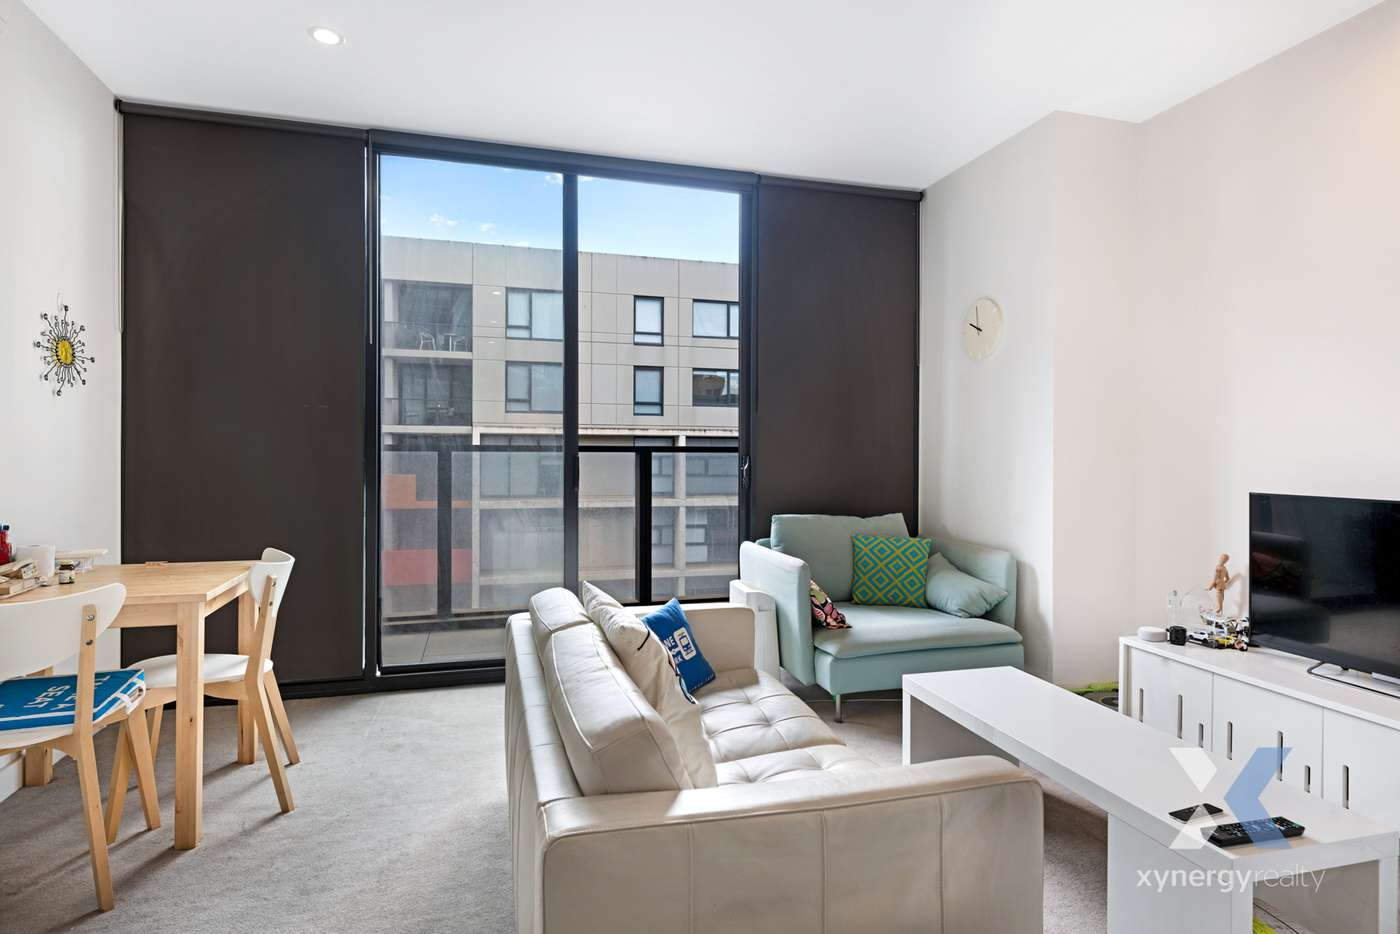 Main view of Homely apartment listing, 521/35 Malcolm Street, South Yarra VIC 3141